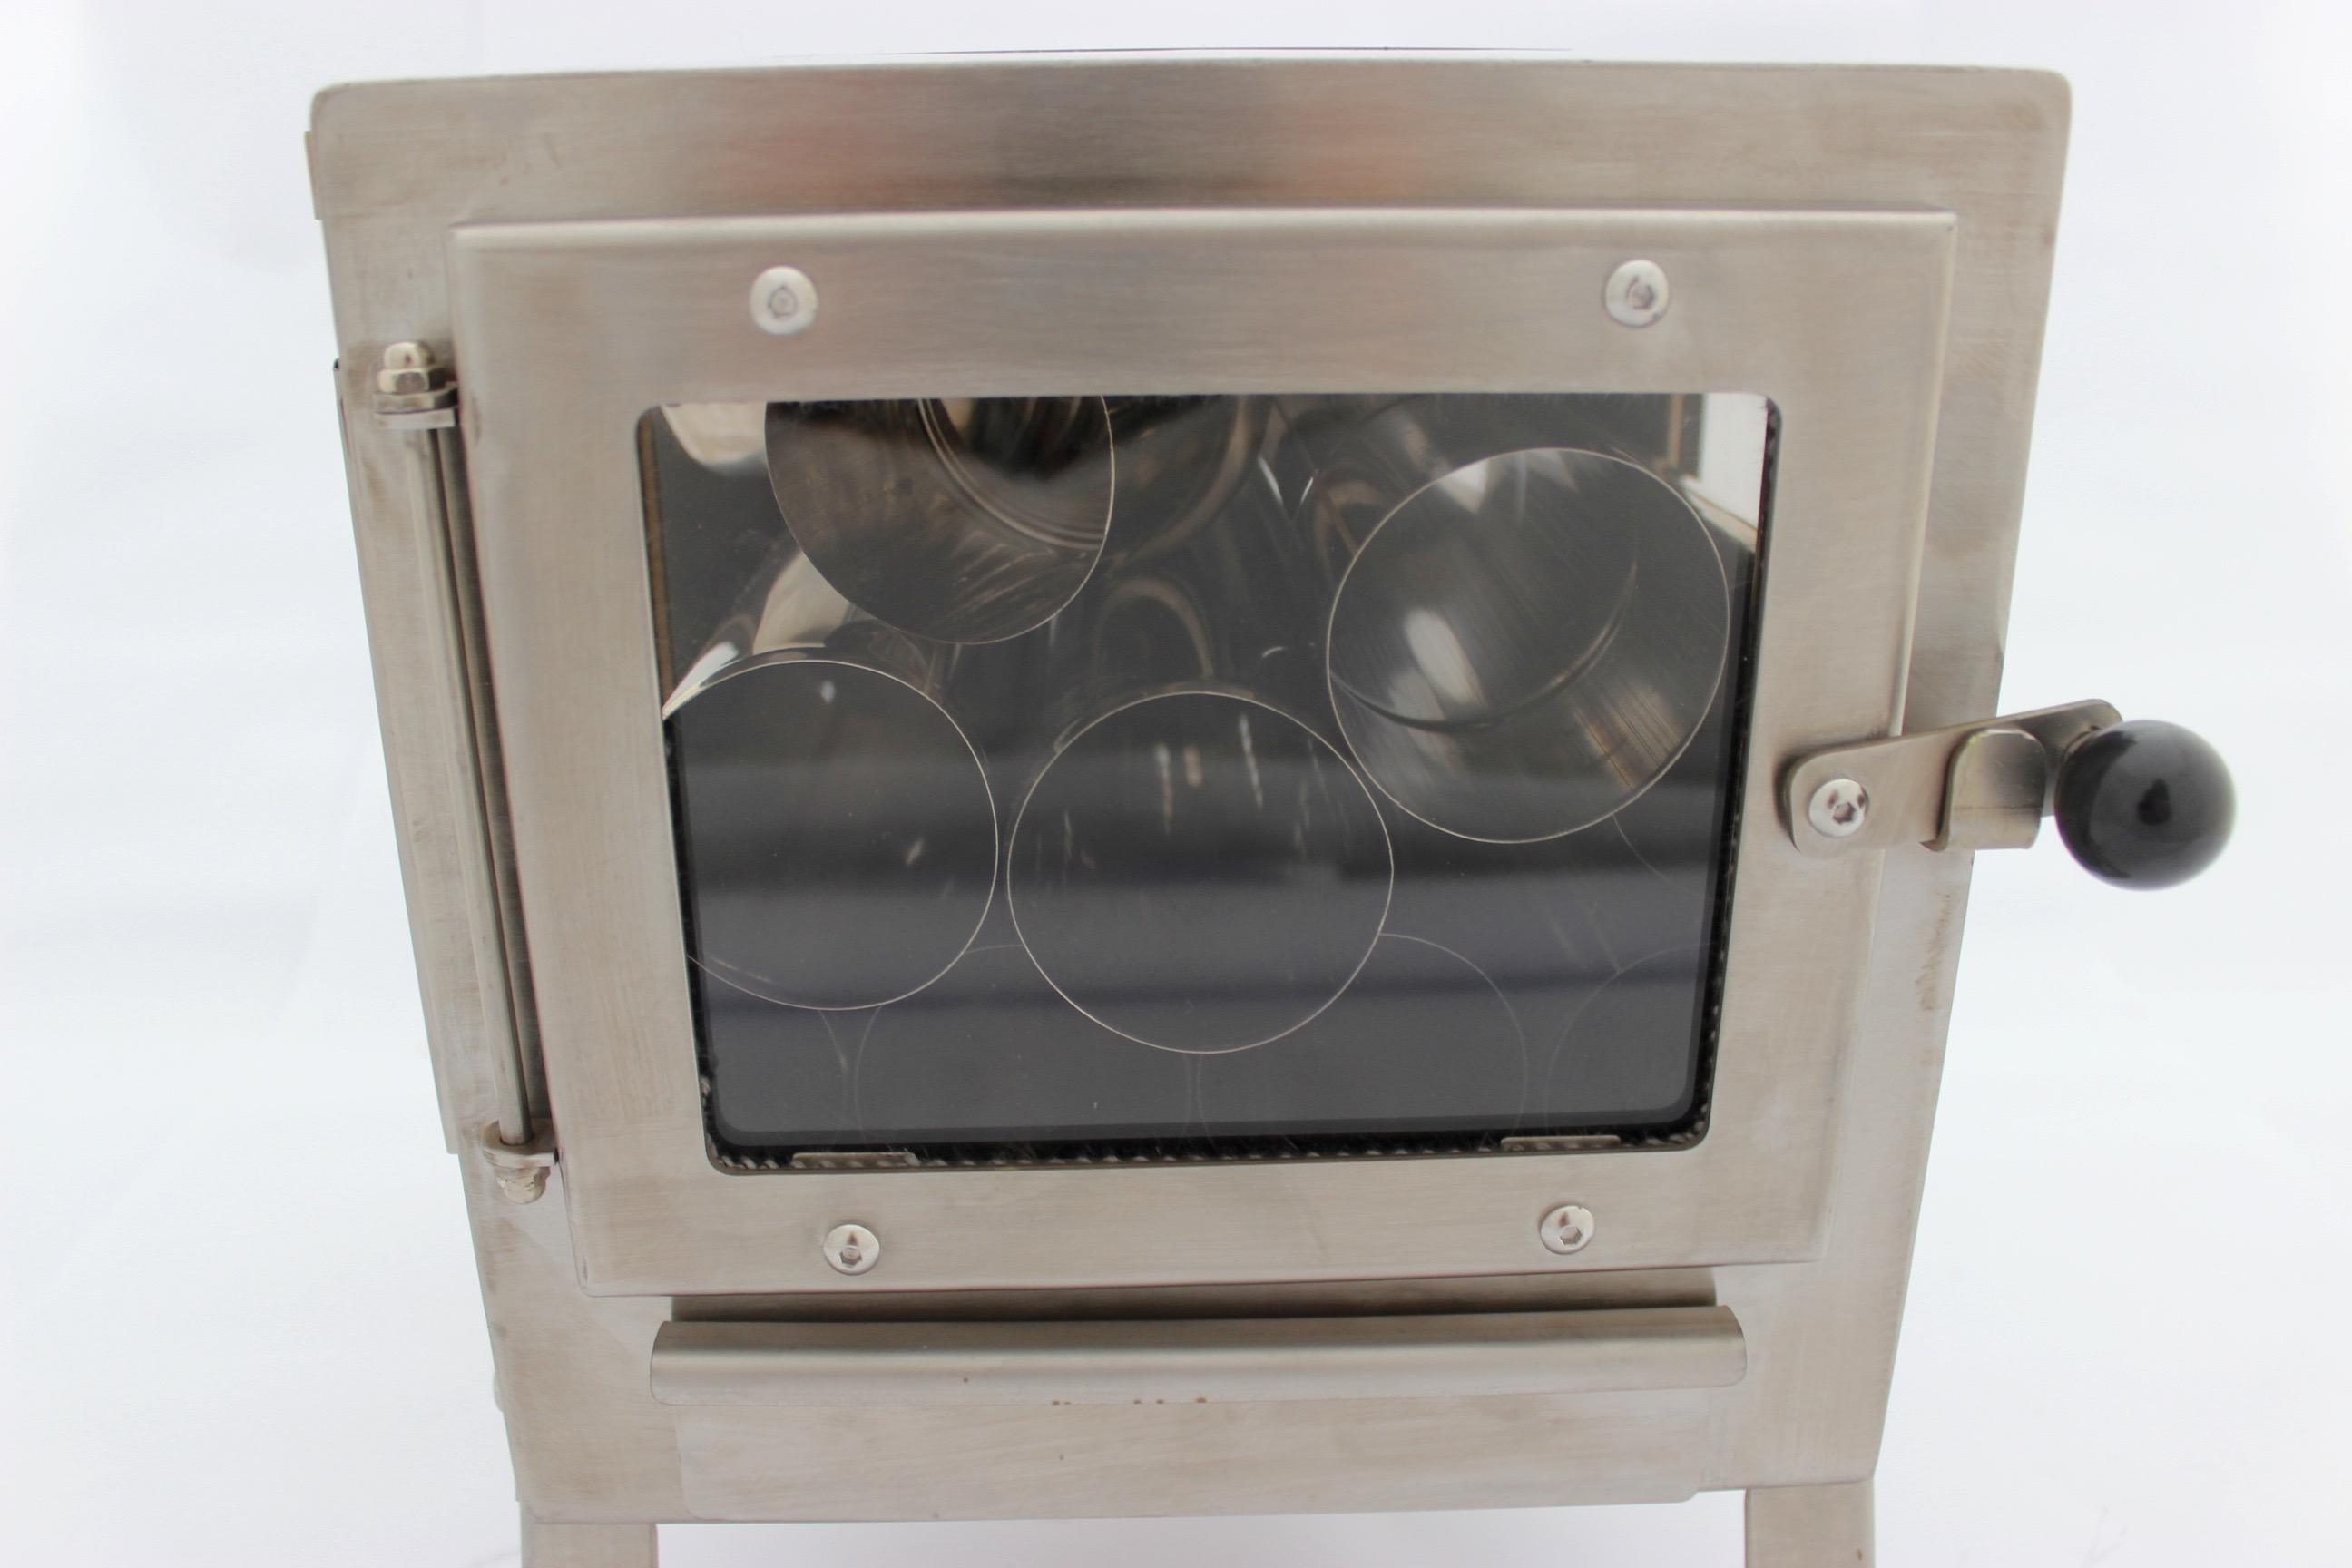 Nomad Clear View Stove With Roof Or Side Exit Flue